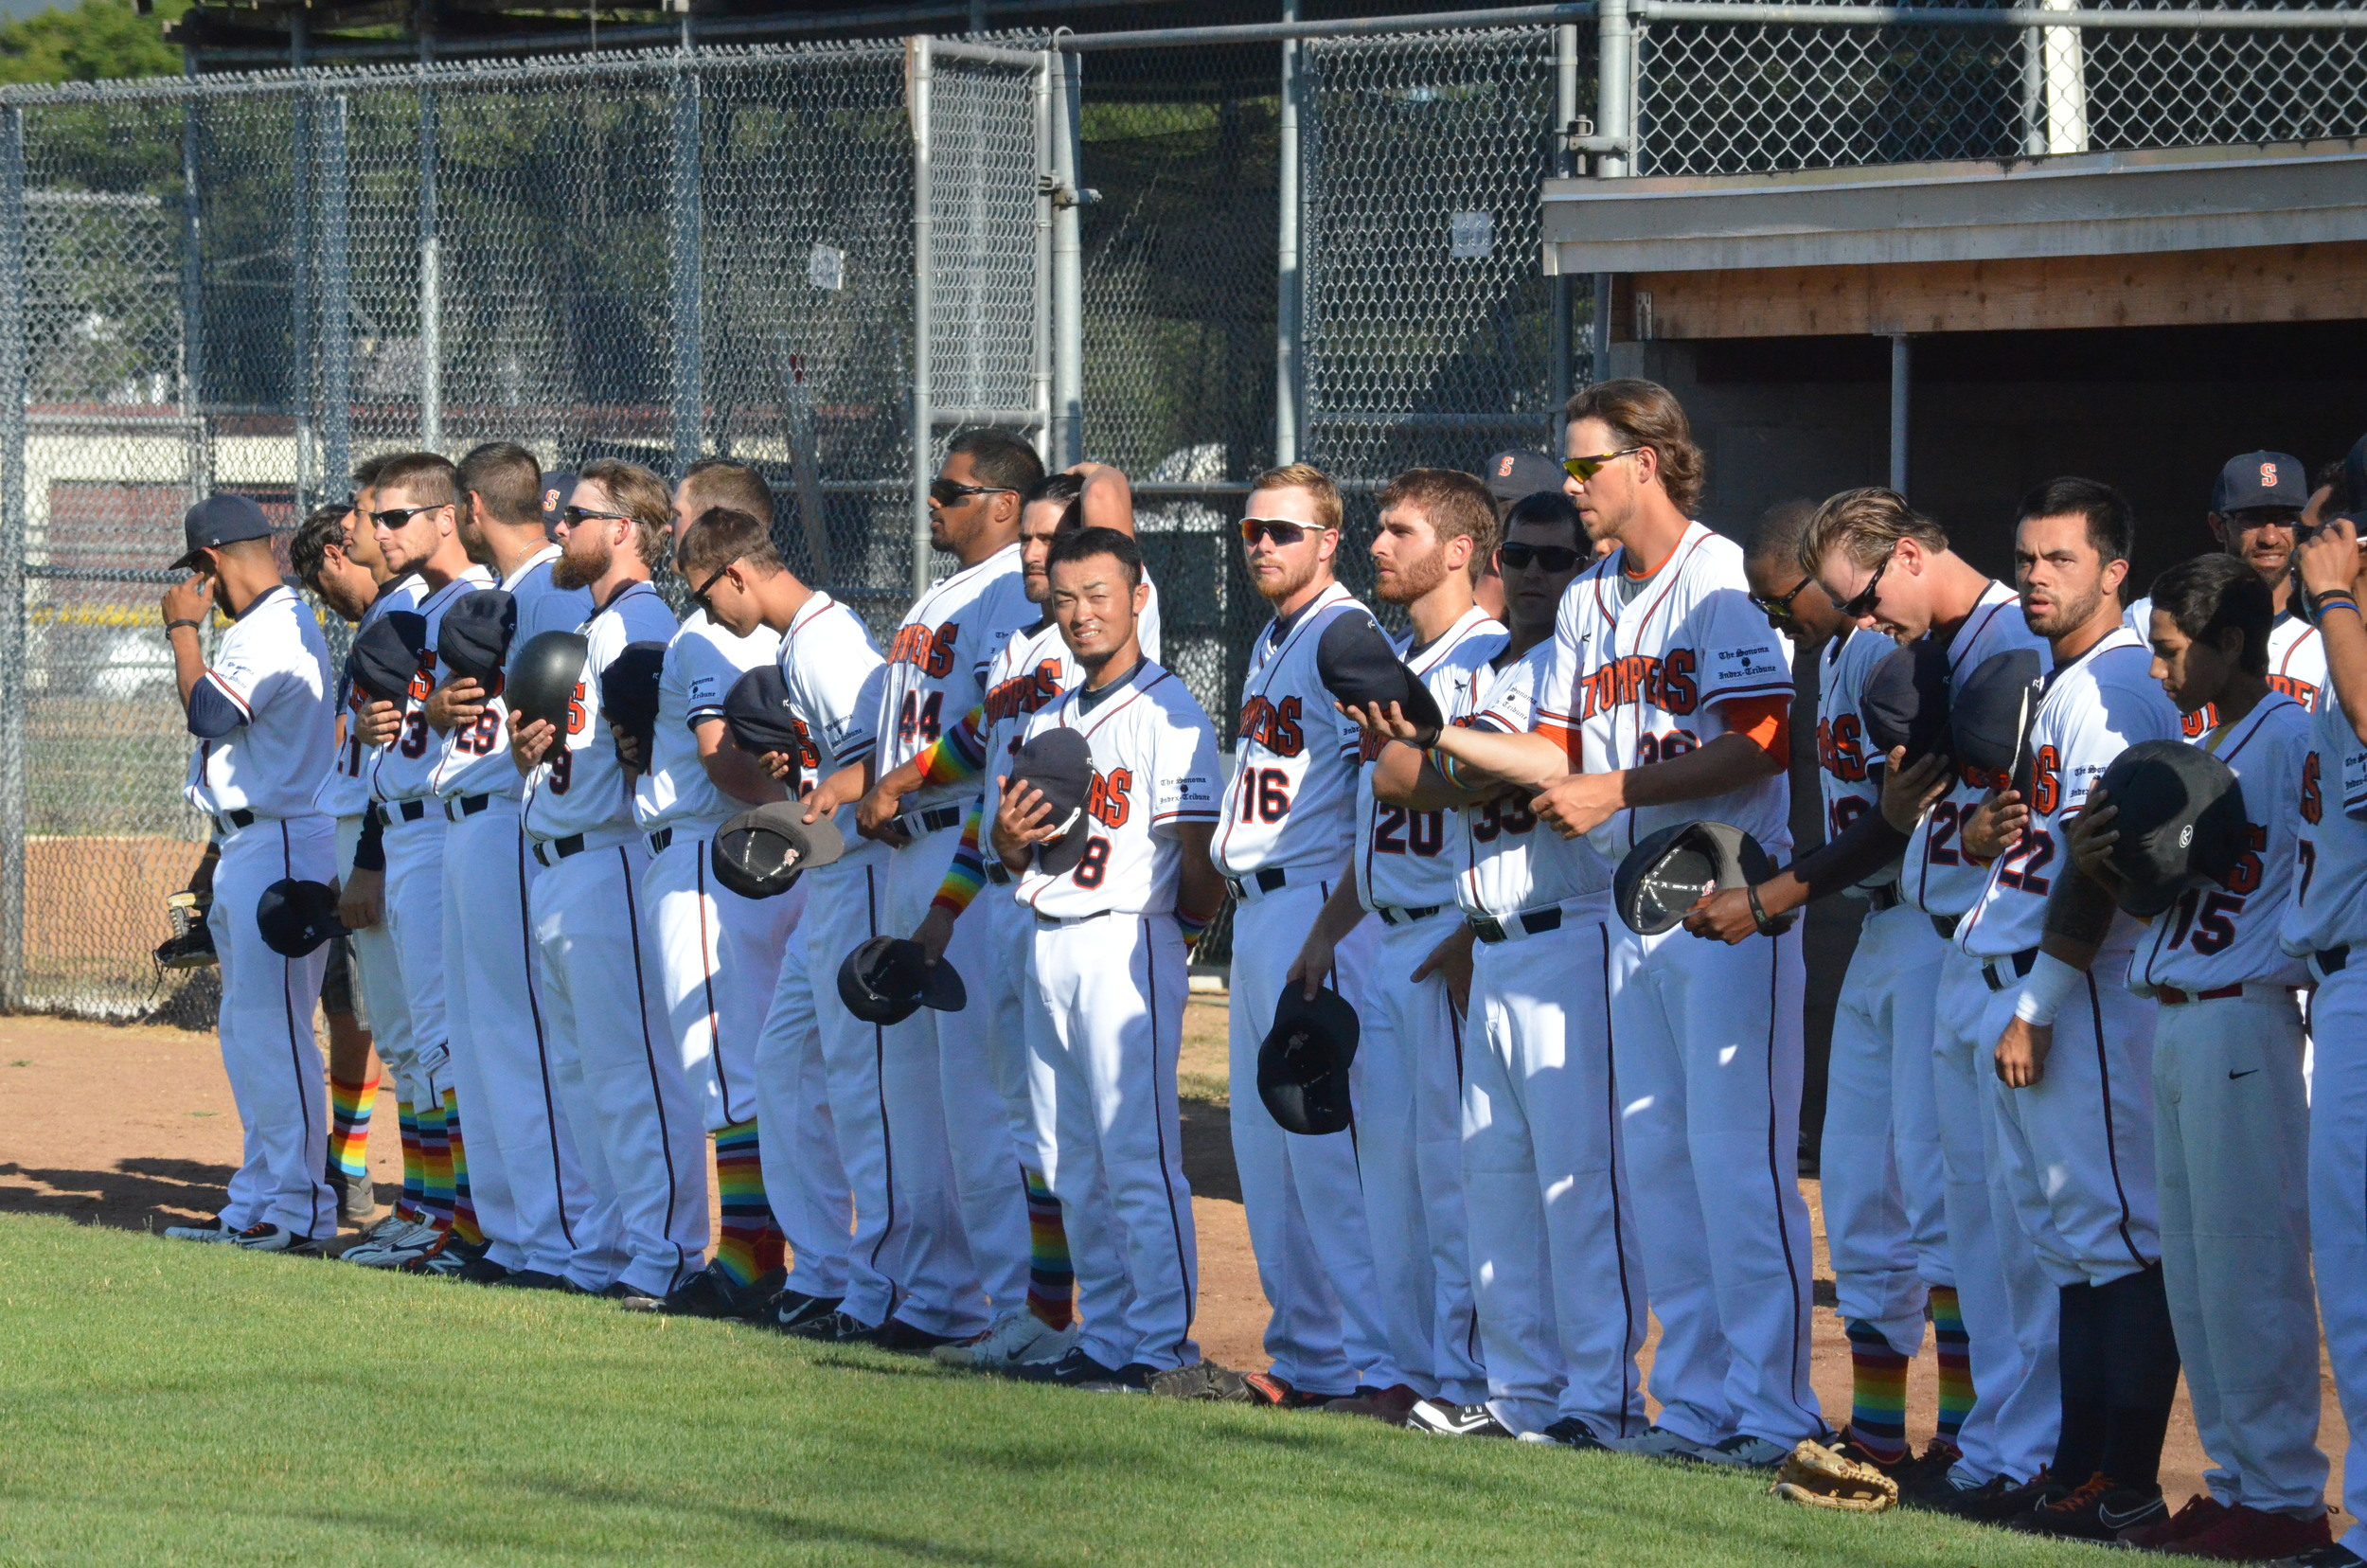 The Stompers will begin Spring Training for 2016 on Friday at Peterson Field in Sonoma.   Danielle Putonen/Sonoma Stompers